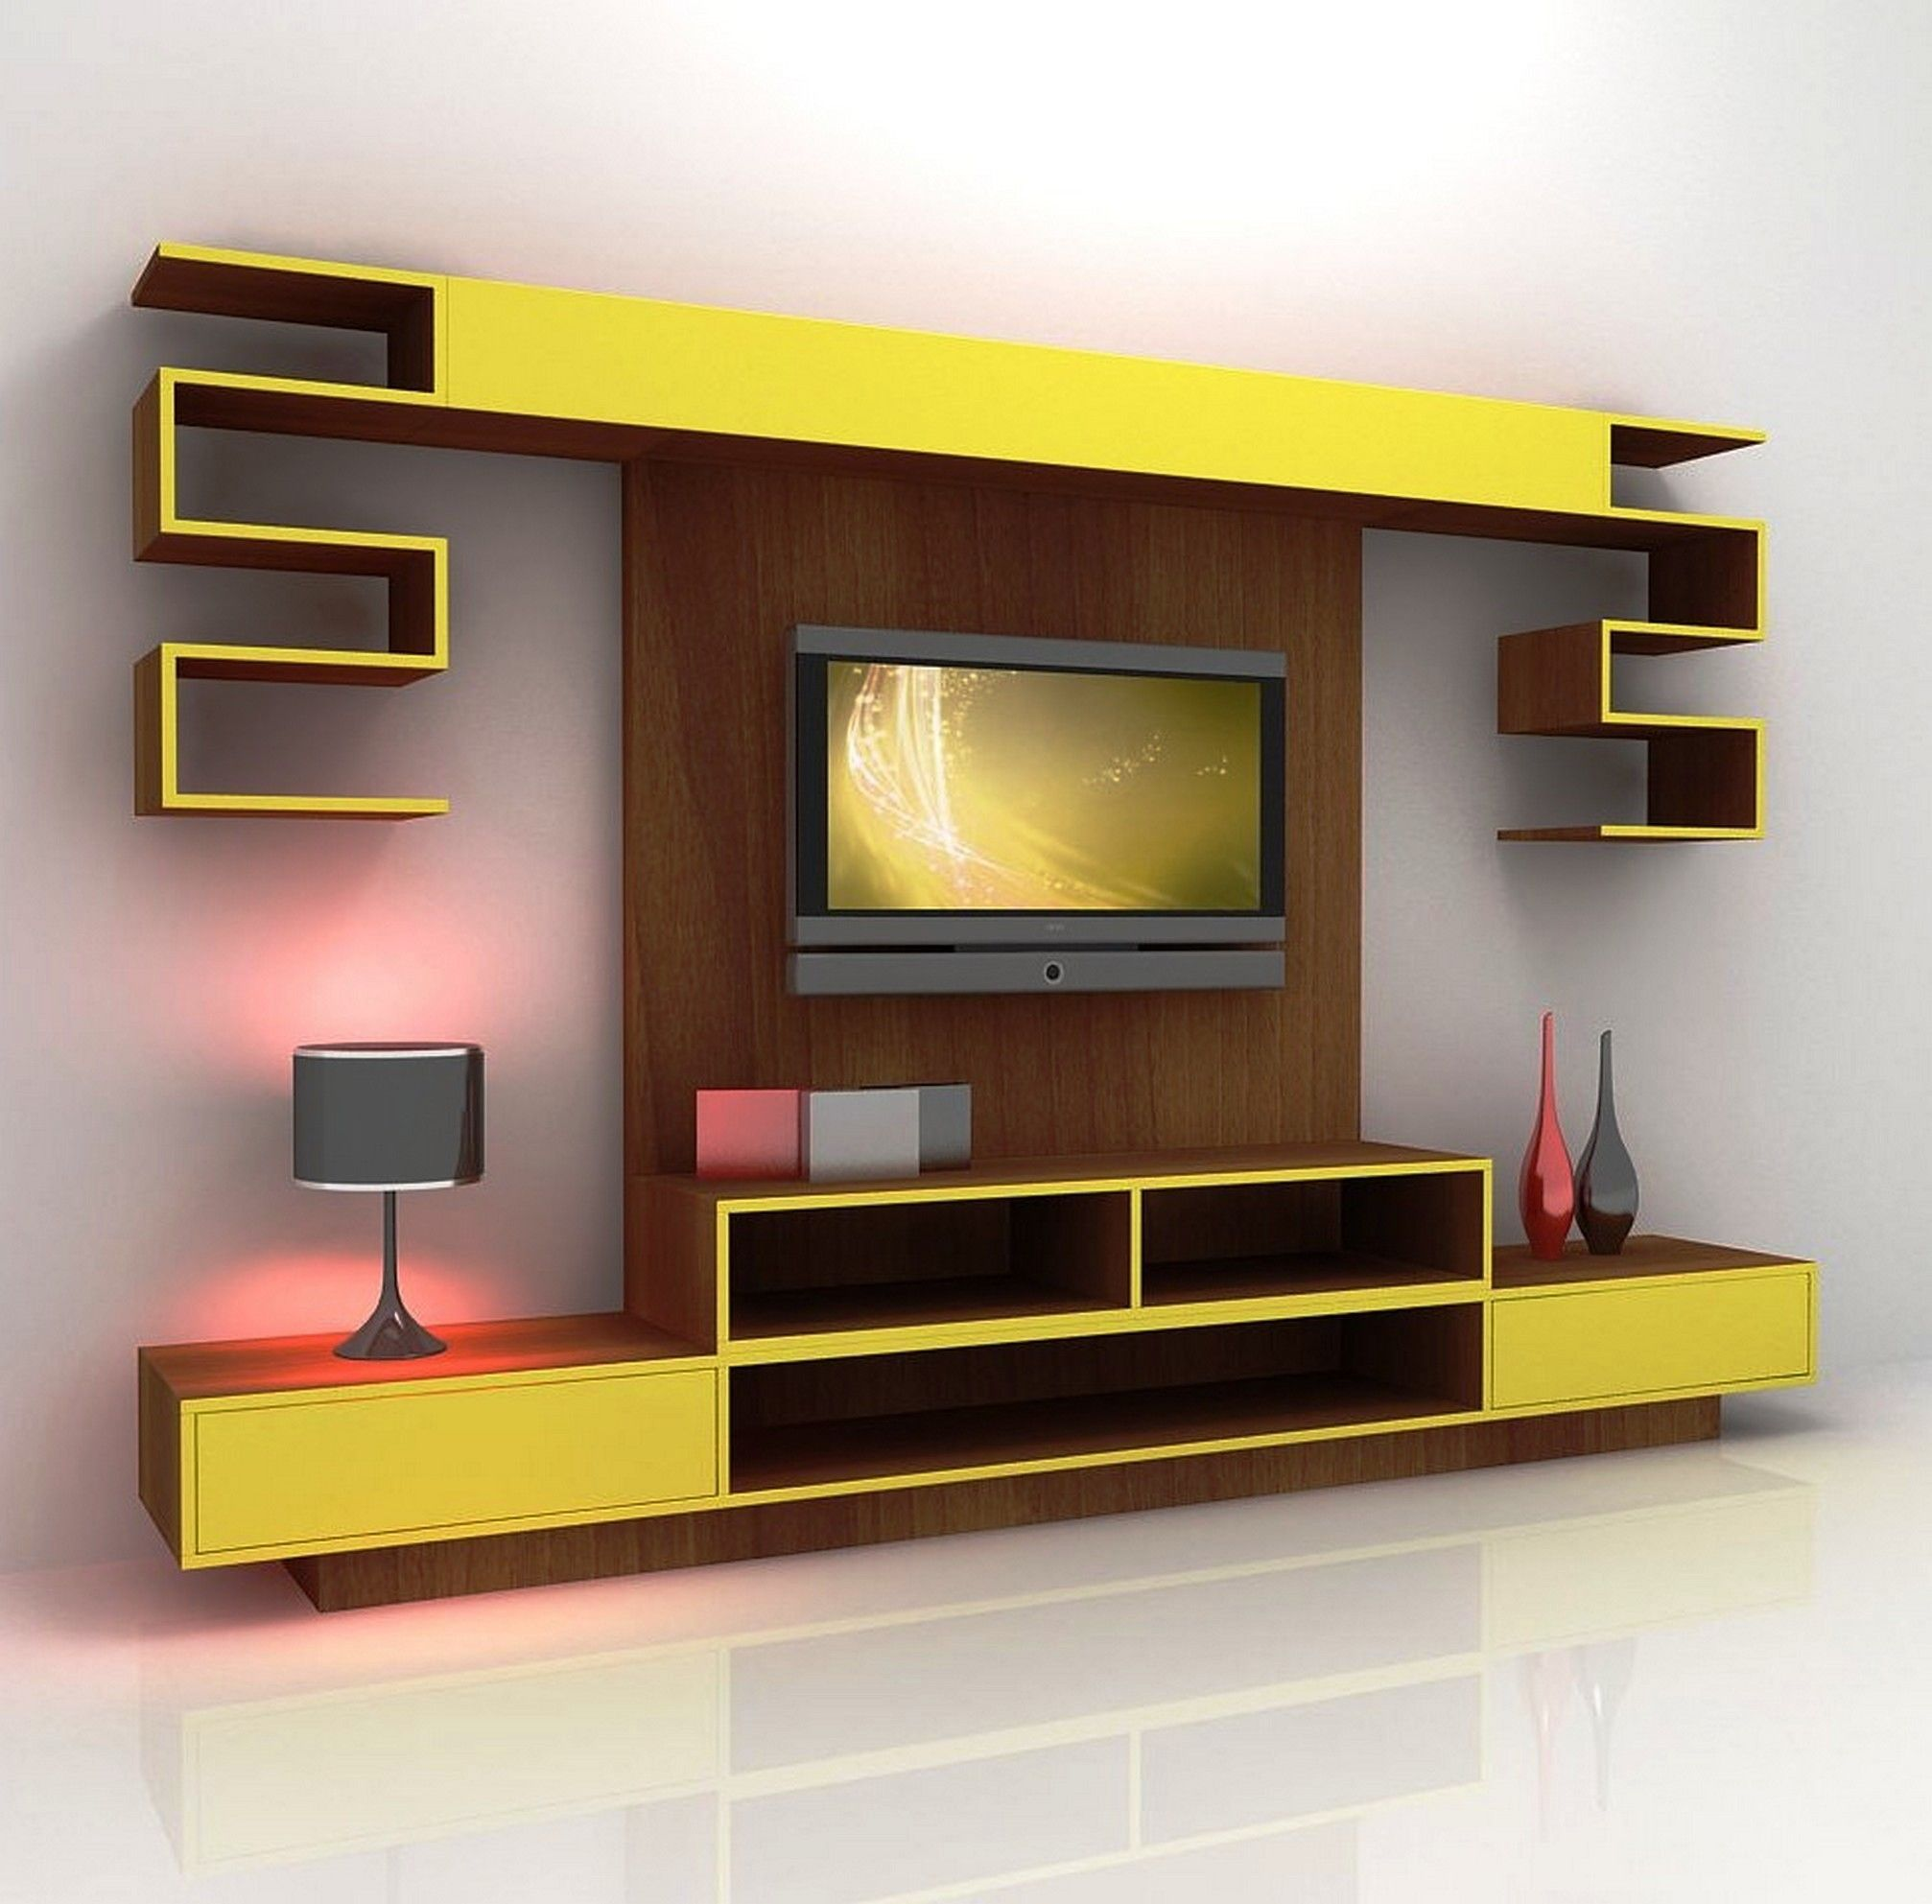 Shelves On The Wall Tv On The Wall Ideas Mount Hide Wires Wooden With Floating